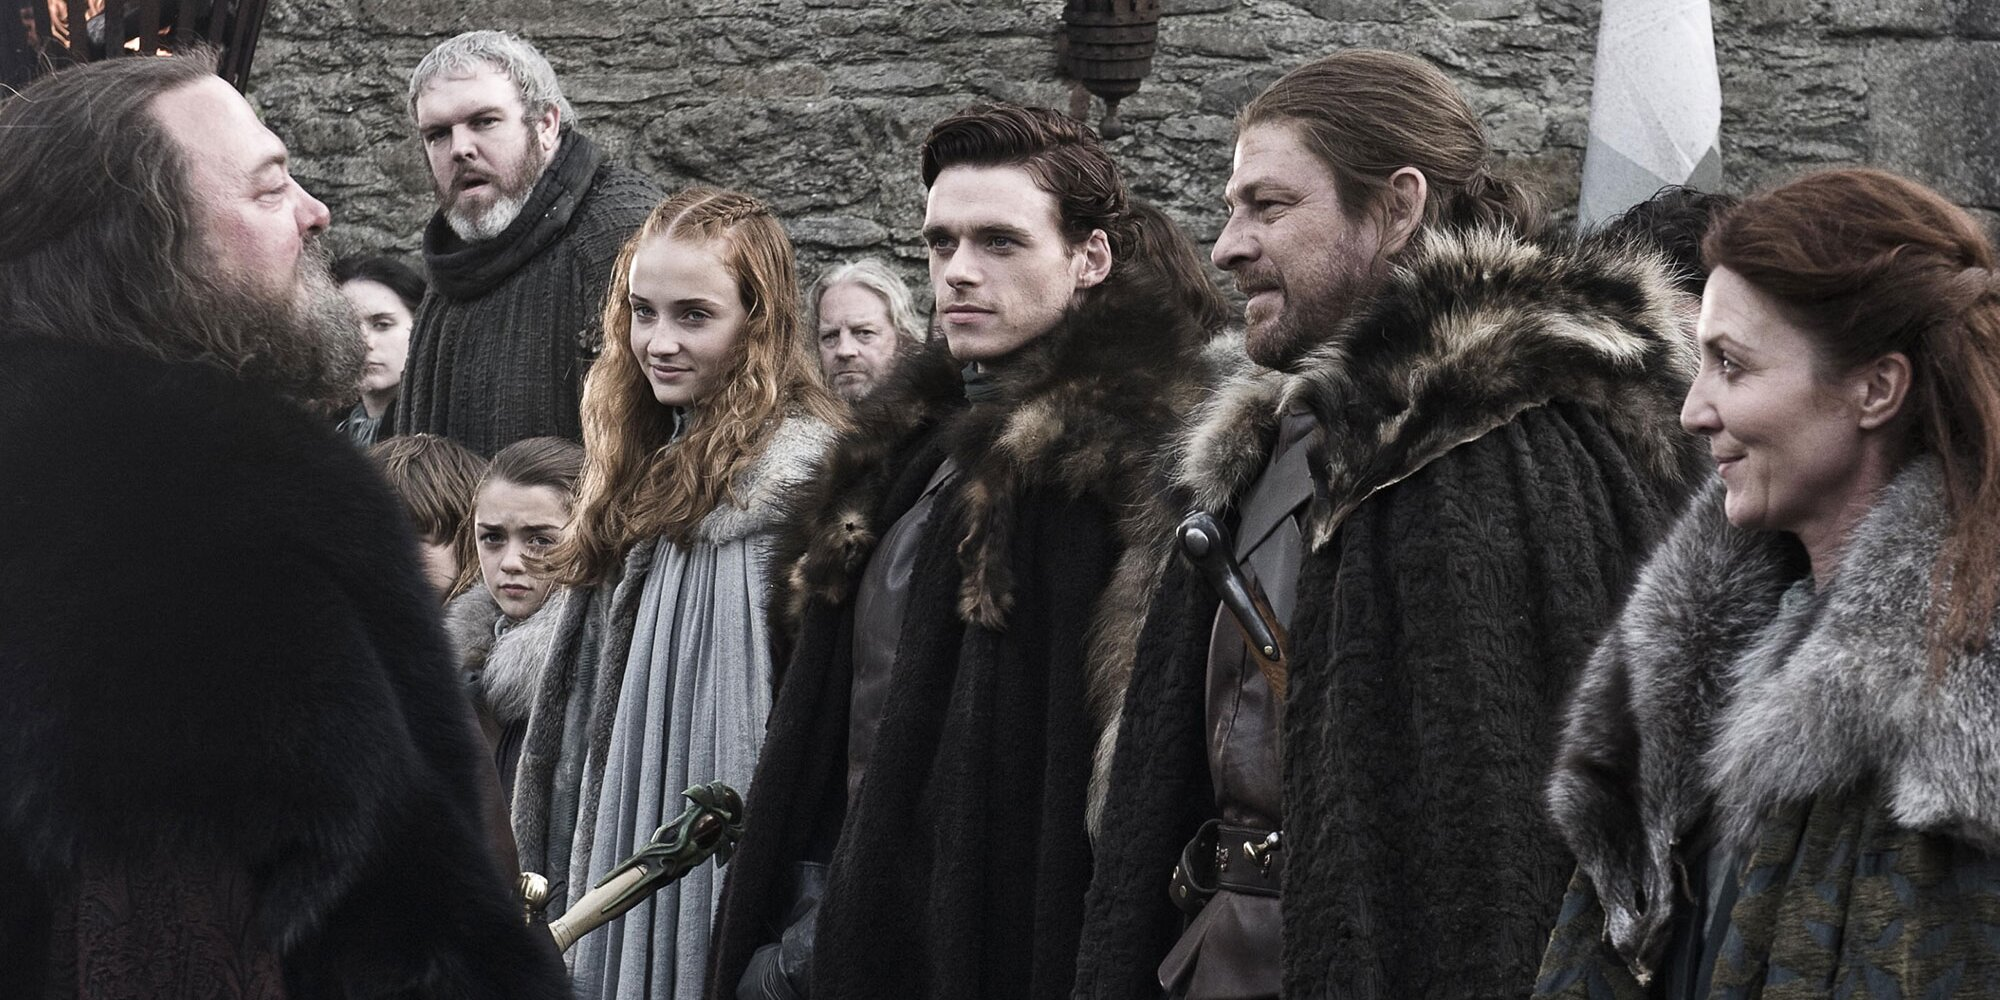 The 'Game of Thrones' series premiere took its time. The wannabes could learn something.